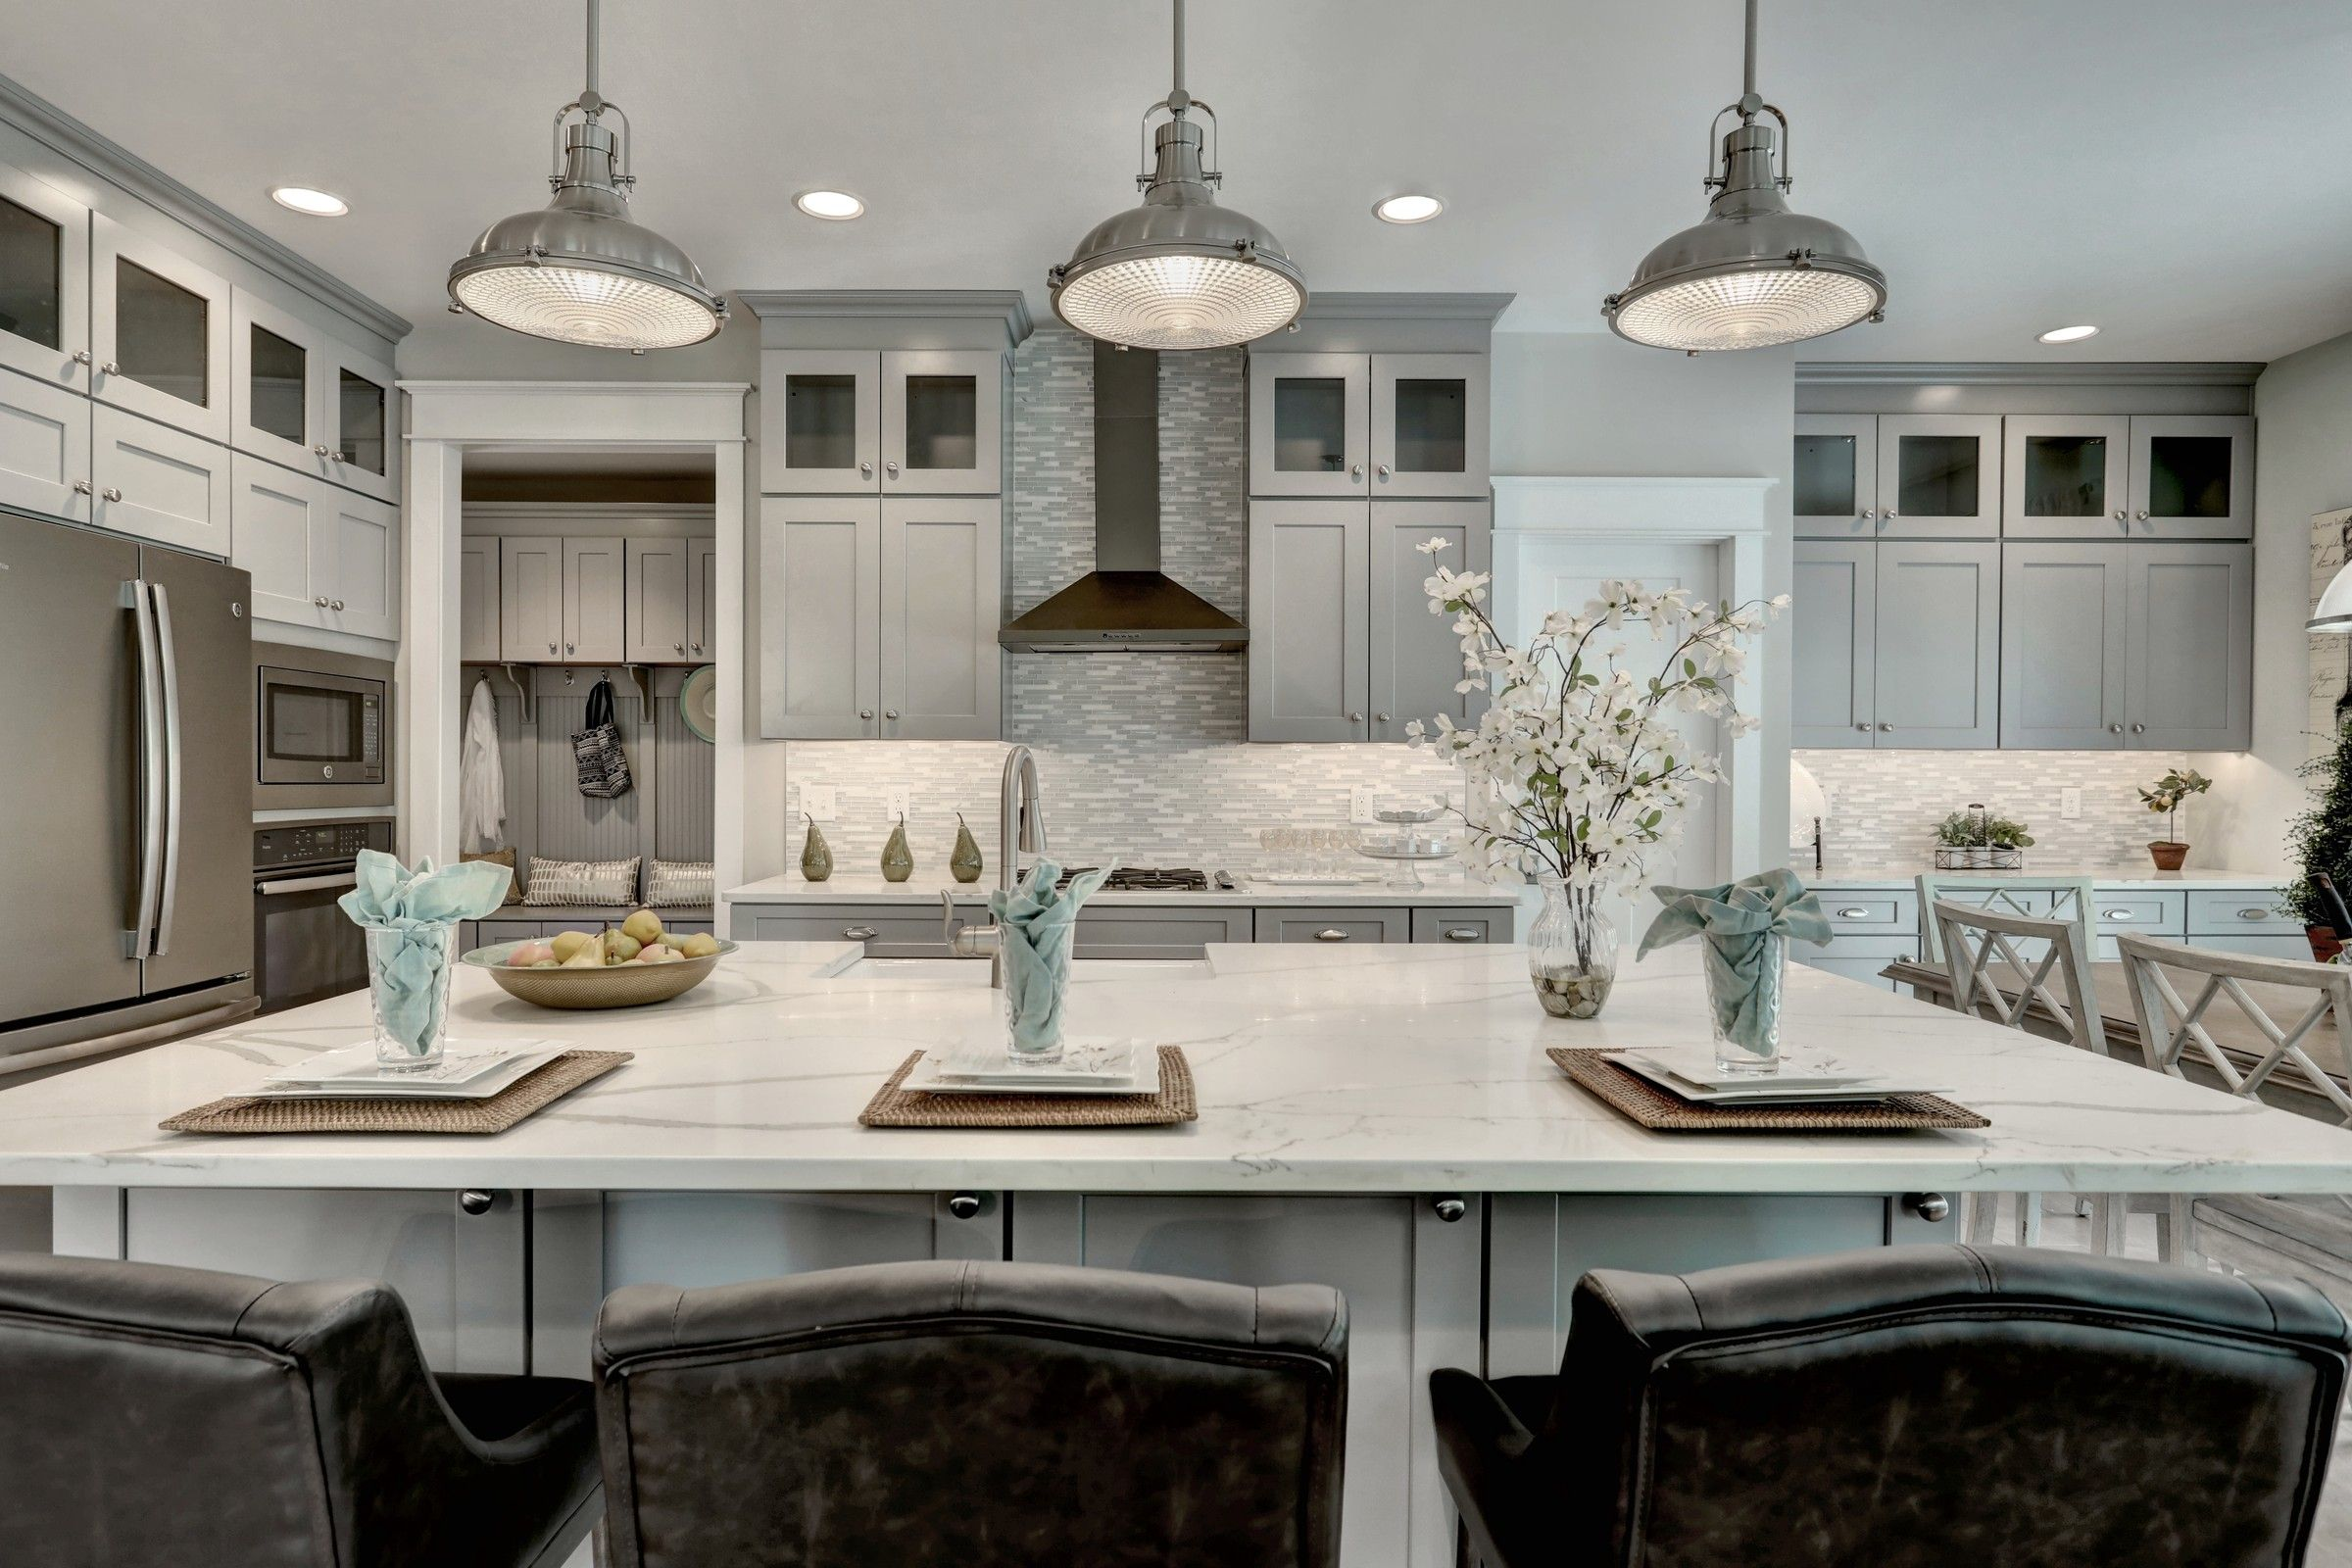 Kitchen featured in the Covington Vintage By Keystone Custom Homes in Baltimore, MD